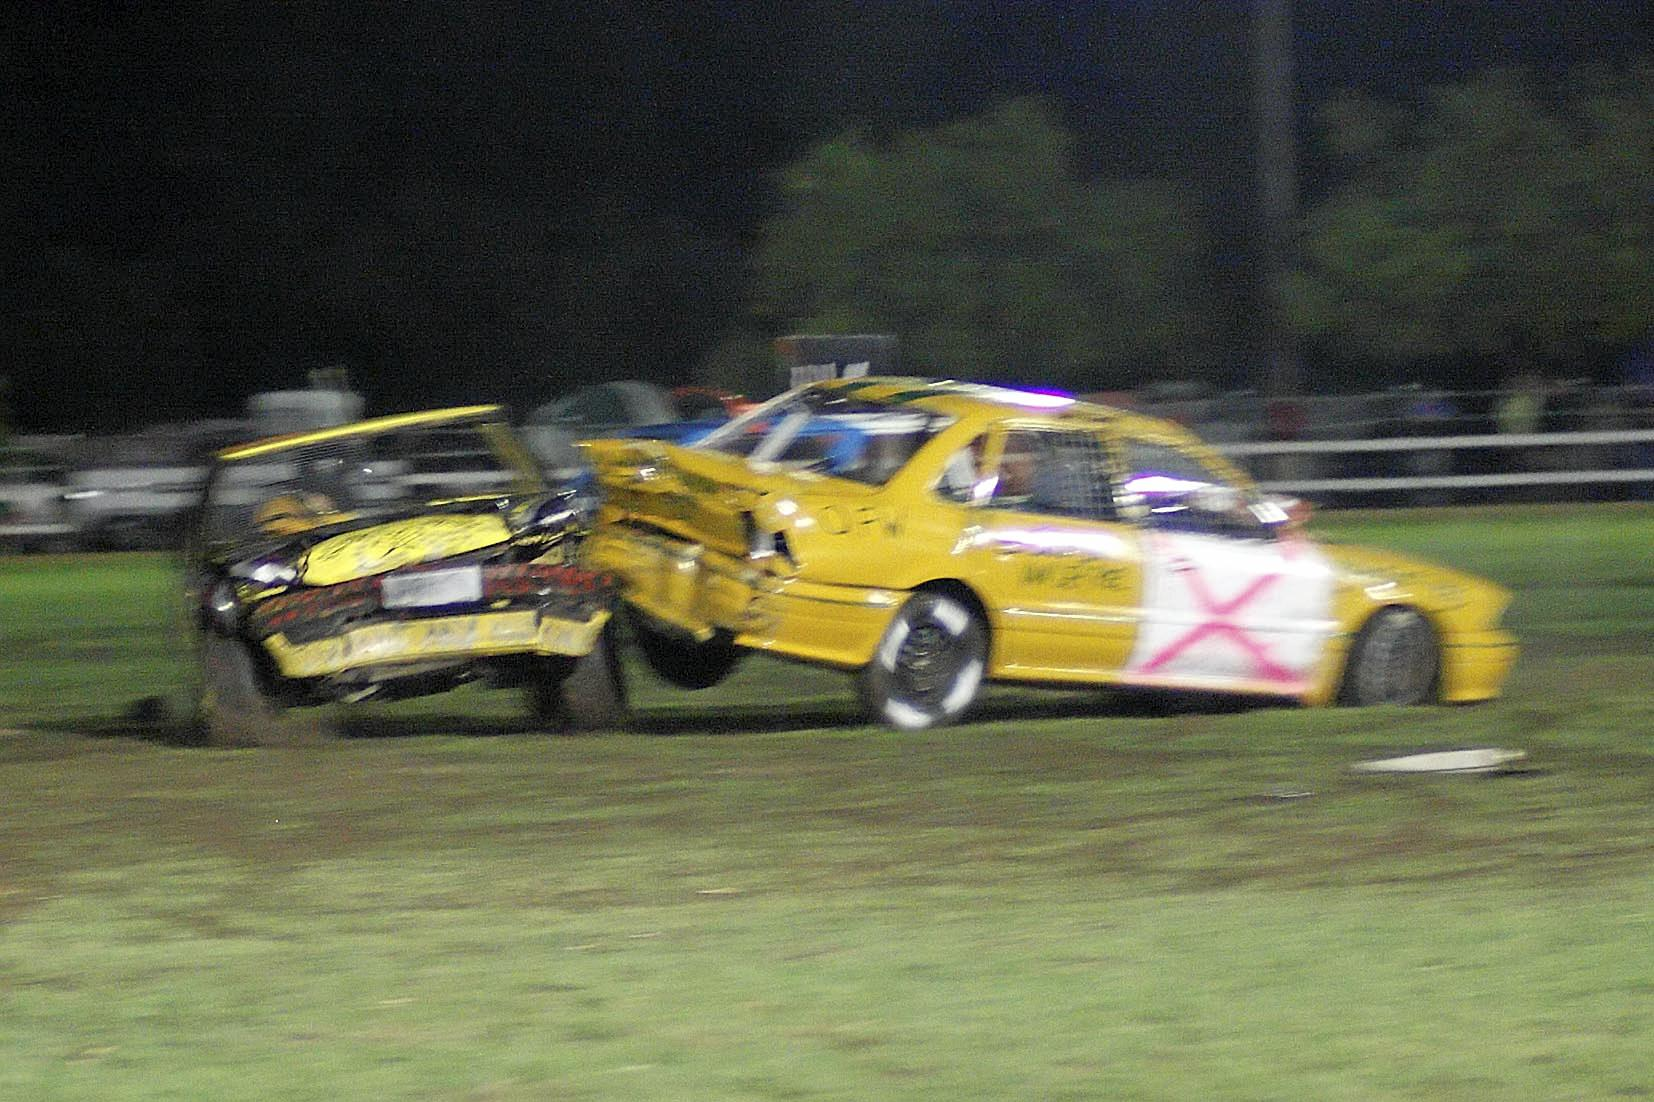 BANG, CRASH, WHALLOP: It will be high-octane, high-stakes action when the best demolition derby drivers from around the country descend on Trevan Ford Grafton Speedway this weekend.